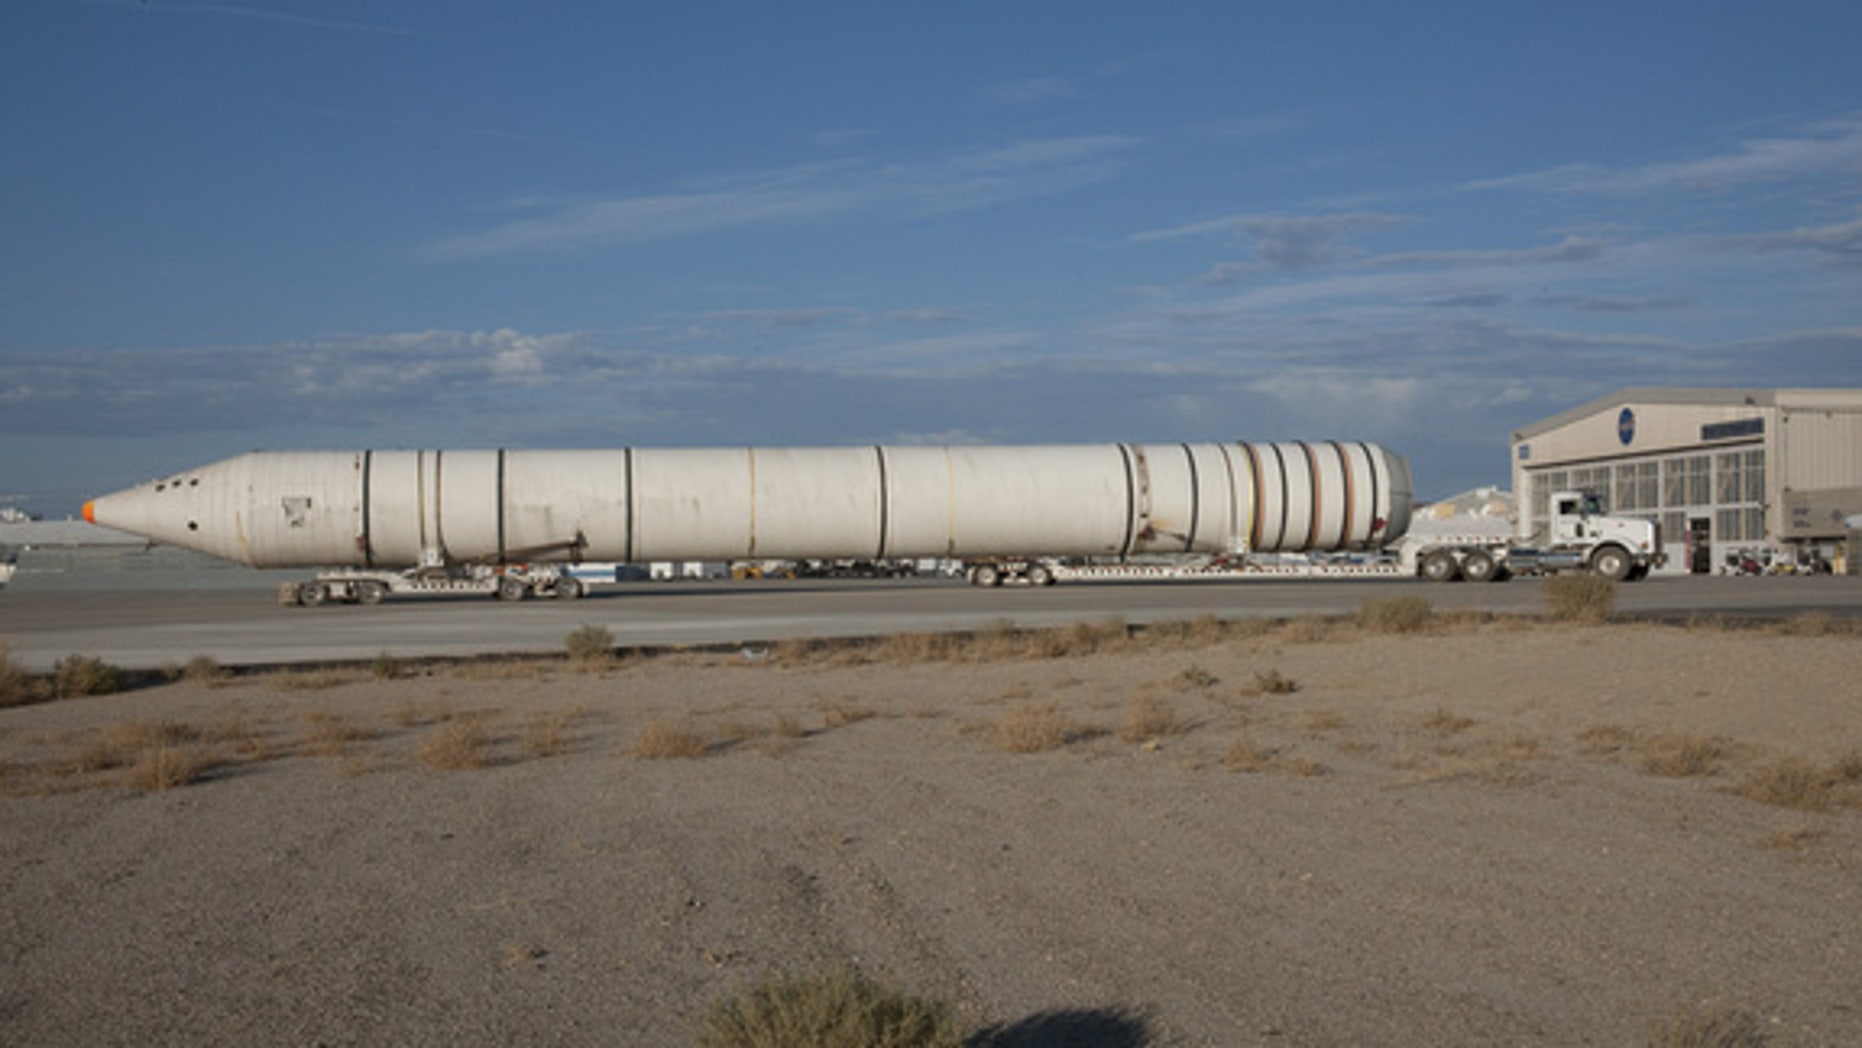 Mounted on special lowboy trailer dollies, one of the two space shuttle solid rocket boosters is hauled up the ramp from Rogers Dry Lake after arrival at NASA's Dryden Research Center in California.